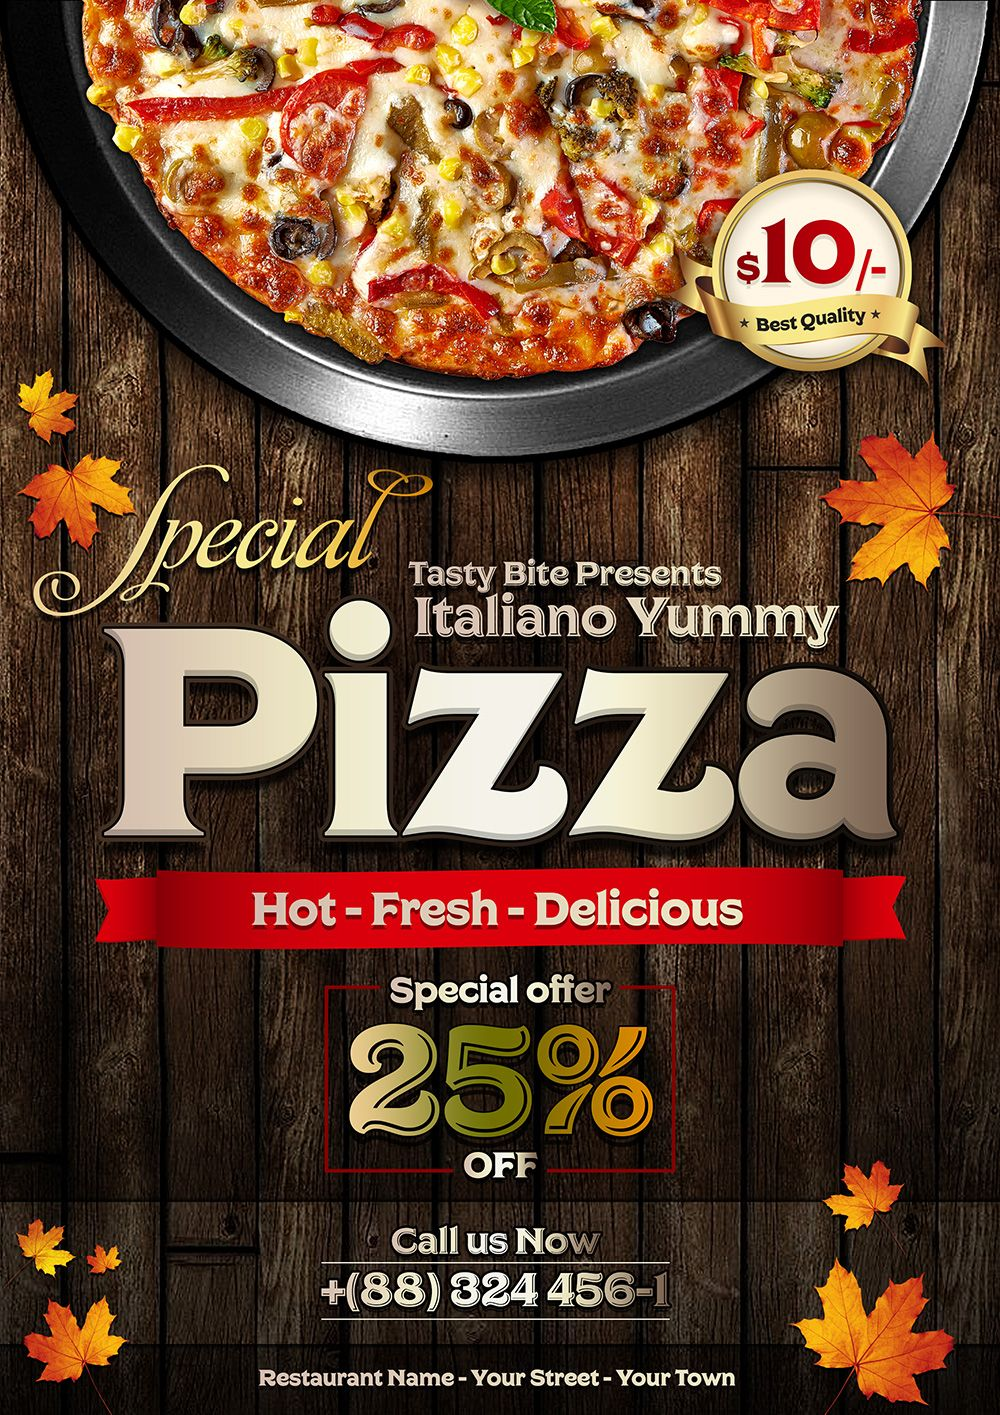 vintage pizza flyer template design psd 1 pizatemplet pinterest